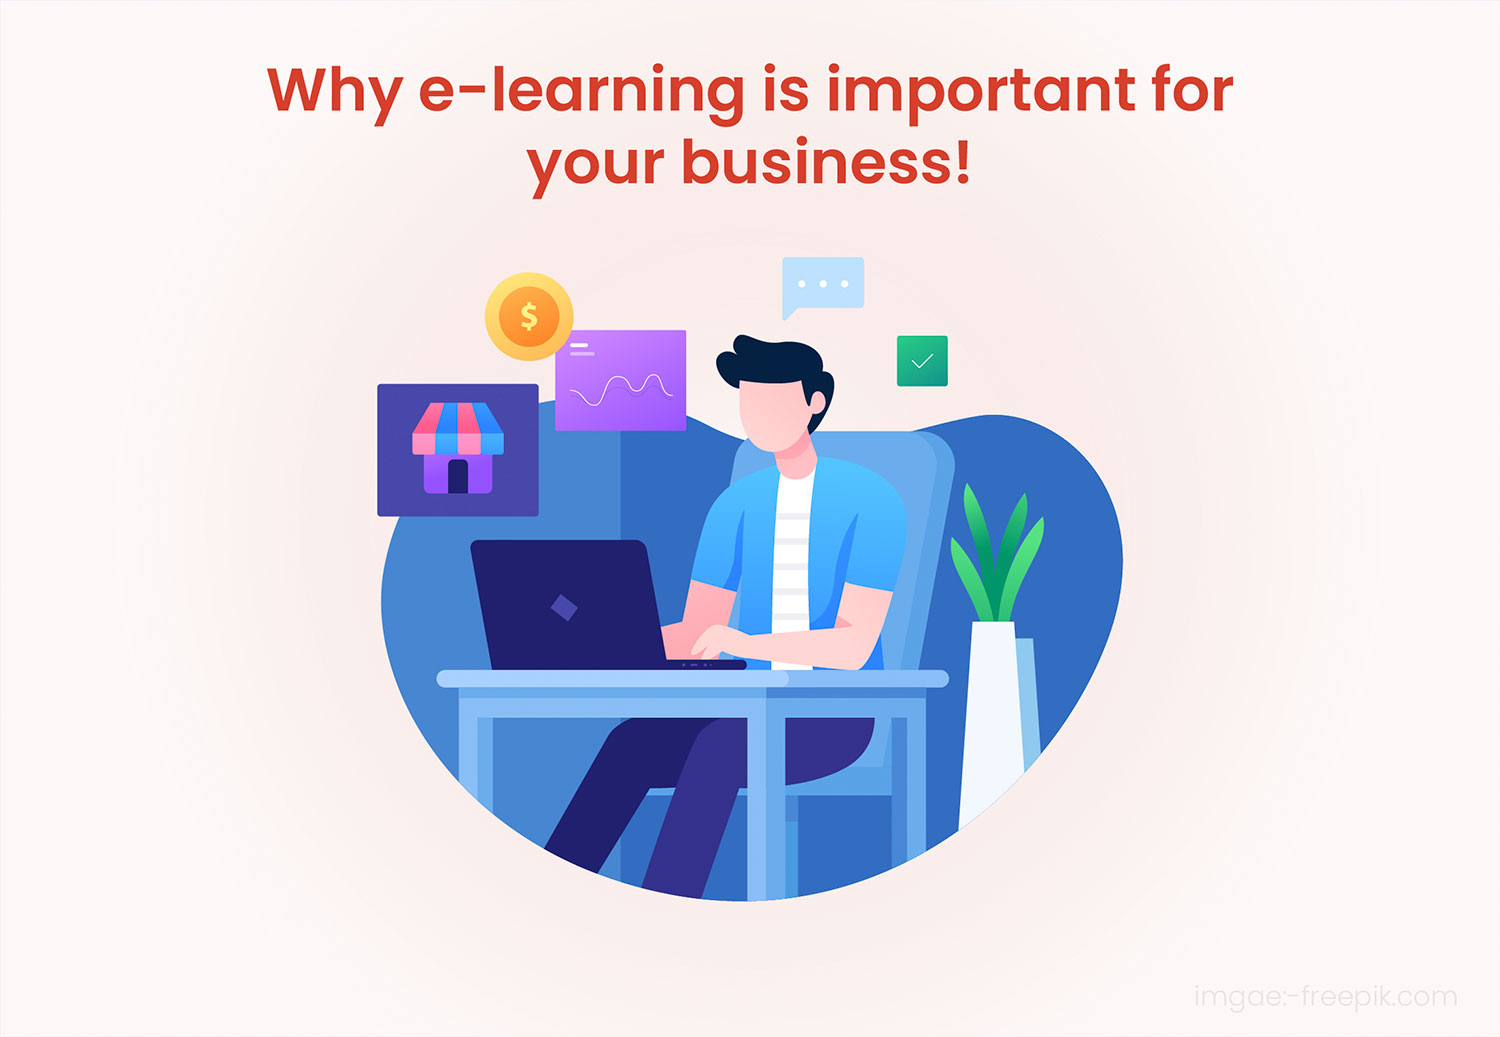 Why e-learning is important for your business